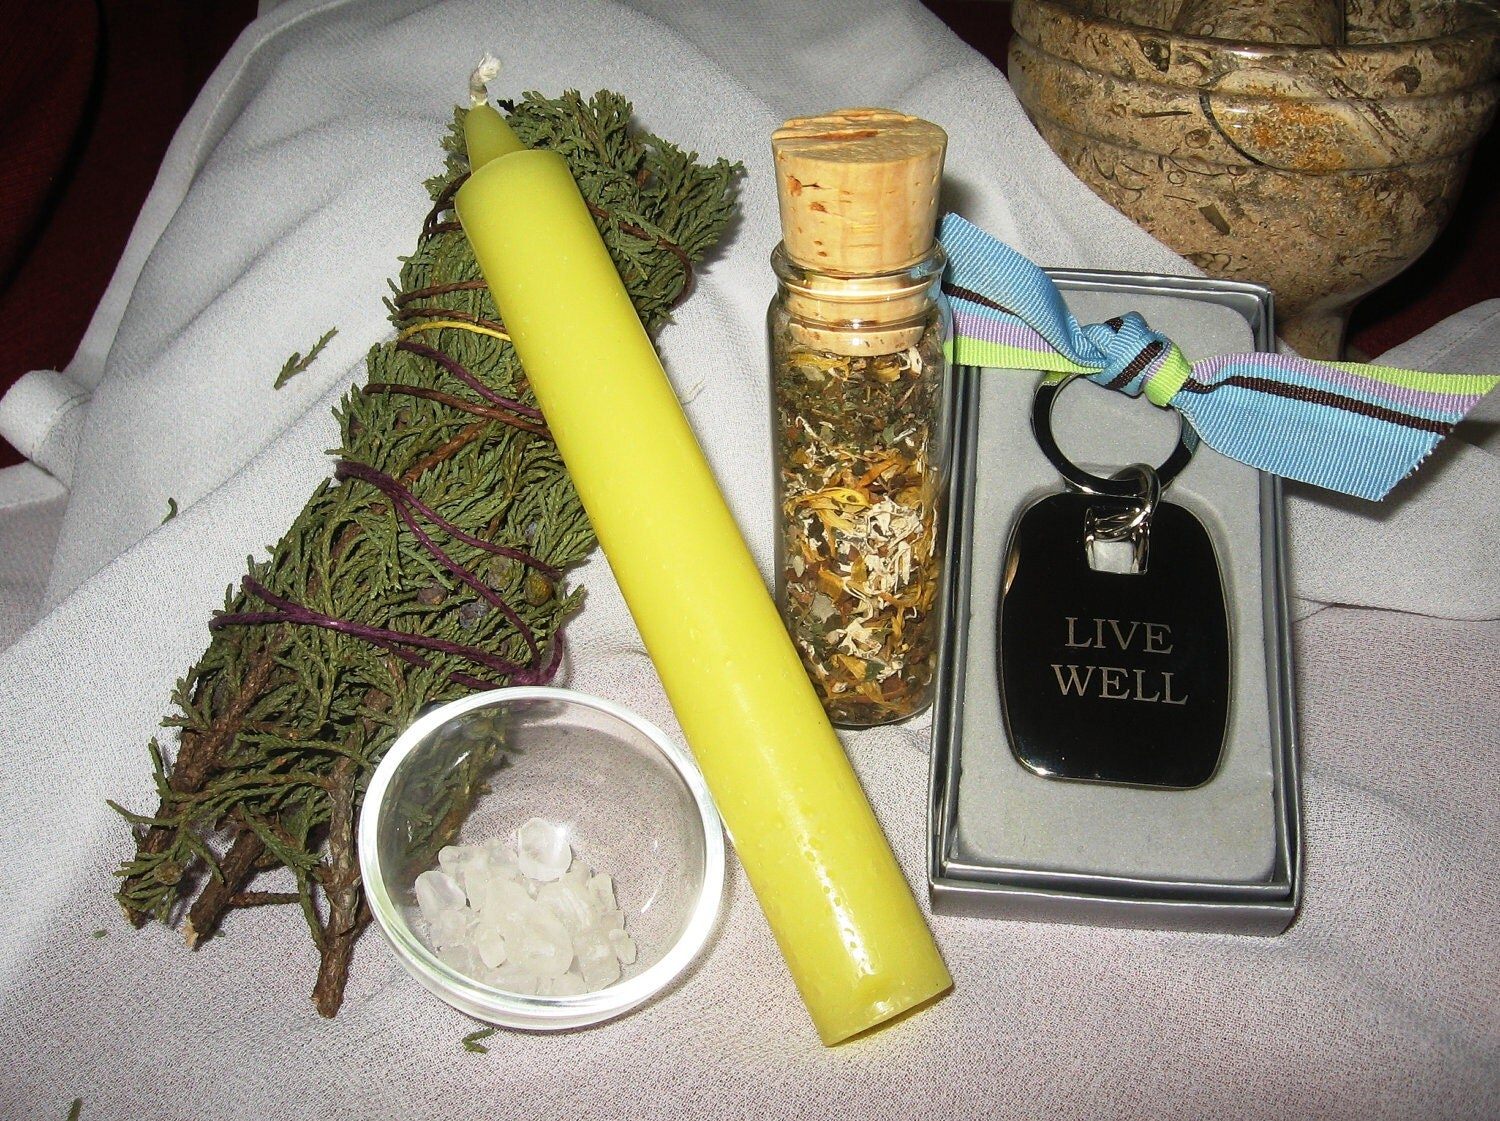 Deluxe New Home Cleansing and Blessing Spell Kit - OOAK